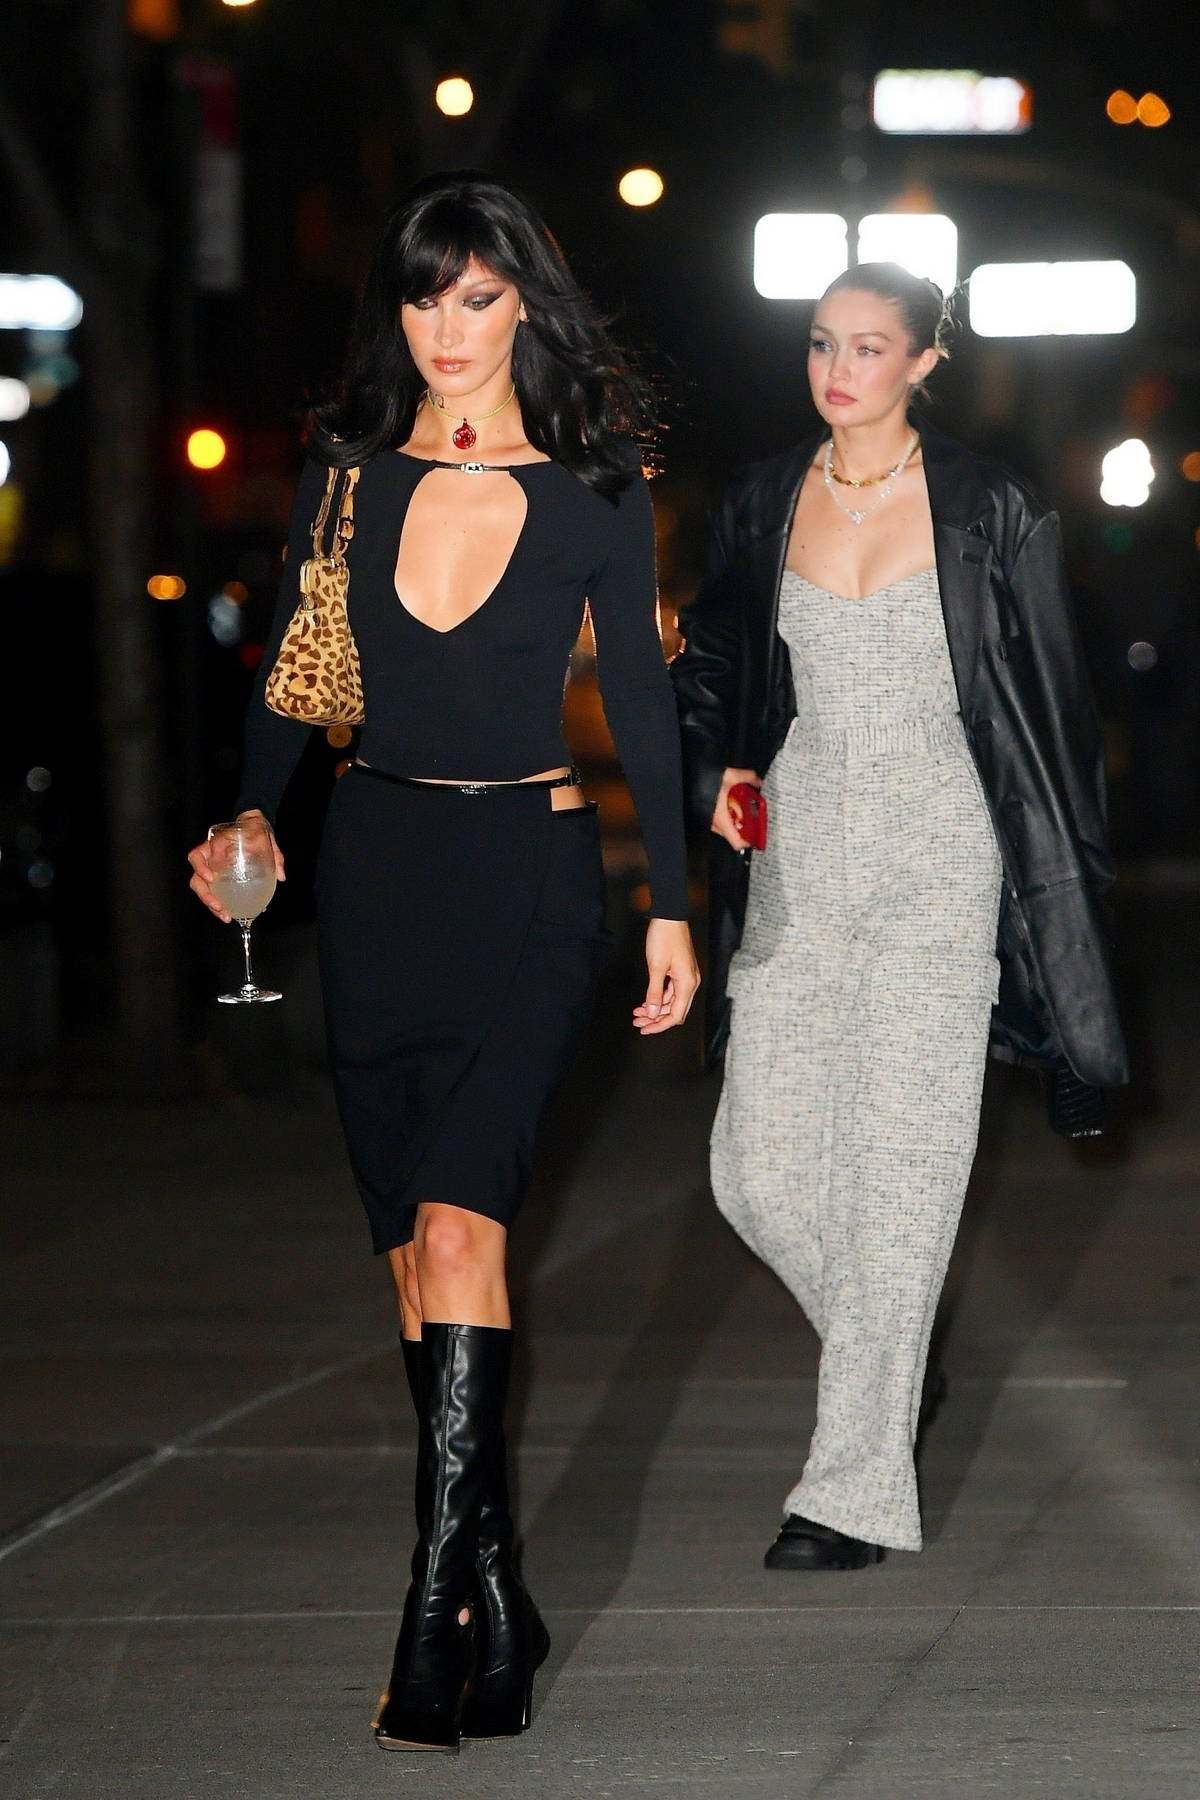 Bella Hadid and Gigi Hadid looks stylish as they step out to celebrate Bella's 25th birthday in New York City